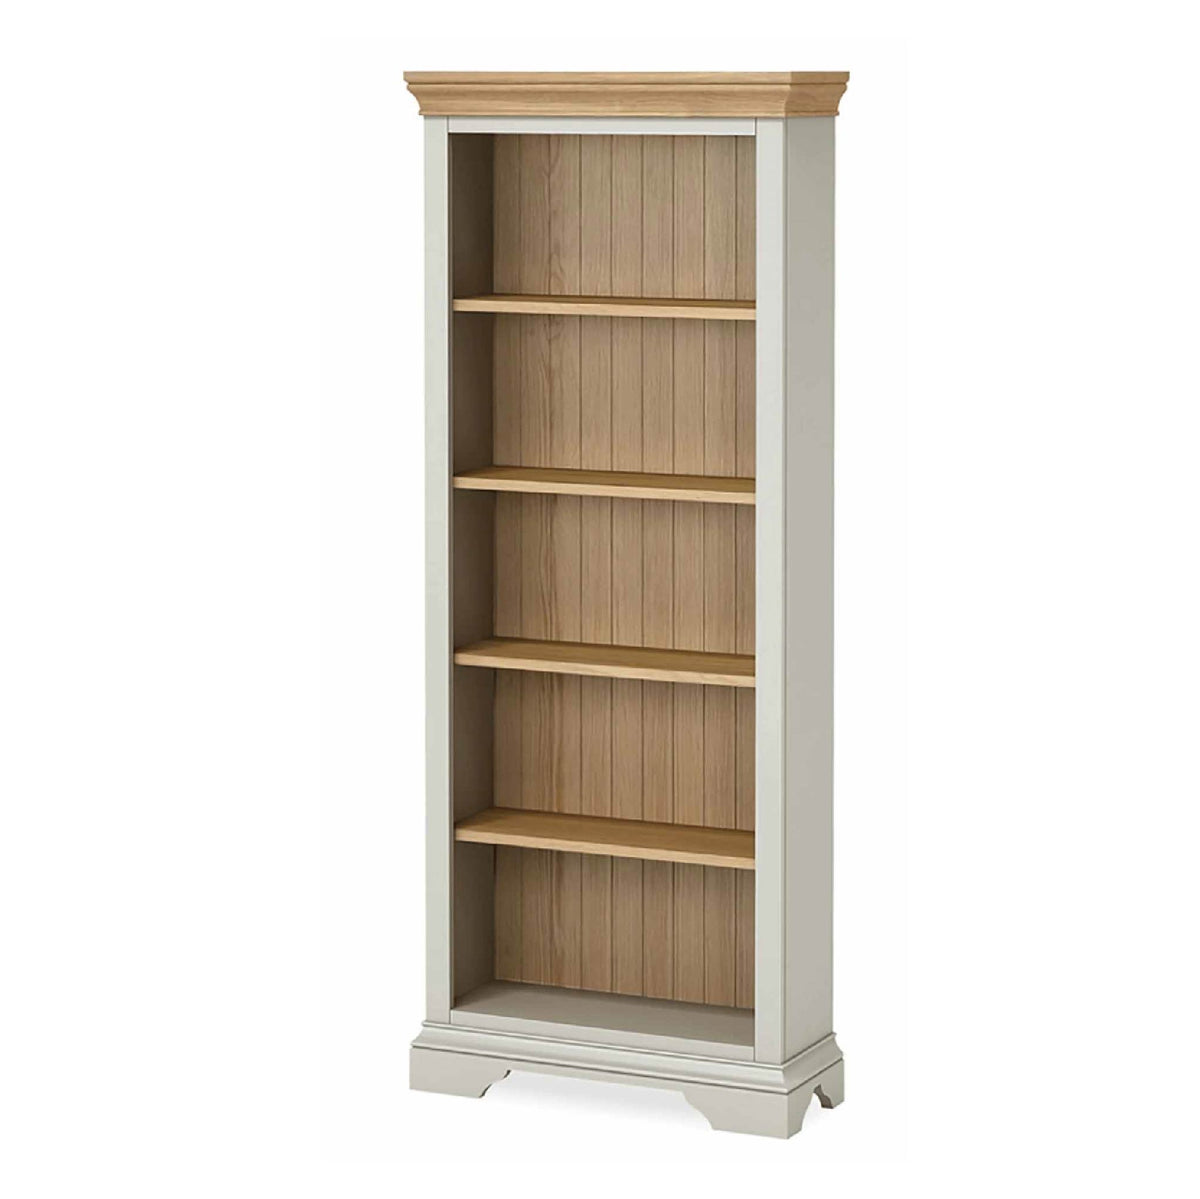 Normandy Grey Large Bookcase by Roseland Furniture